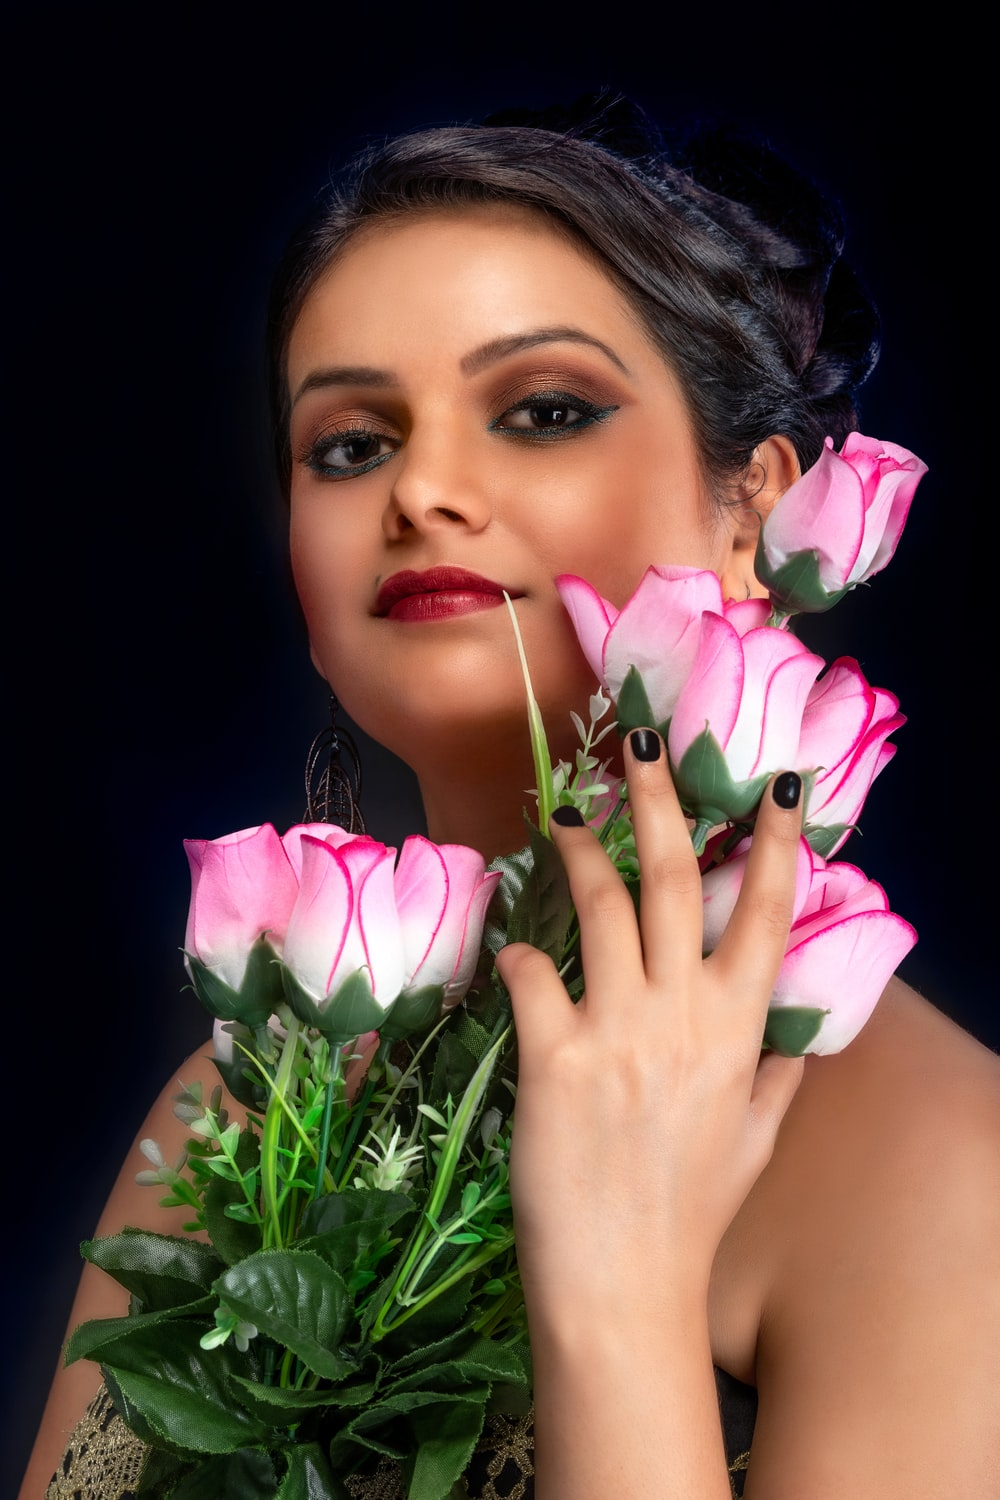 woman holding pink rose flowers